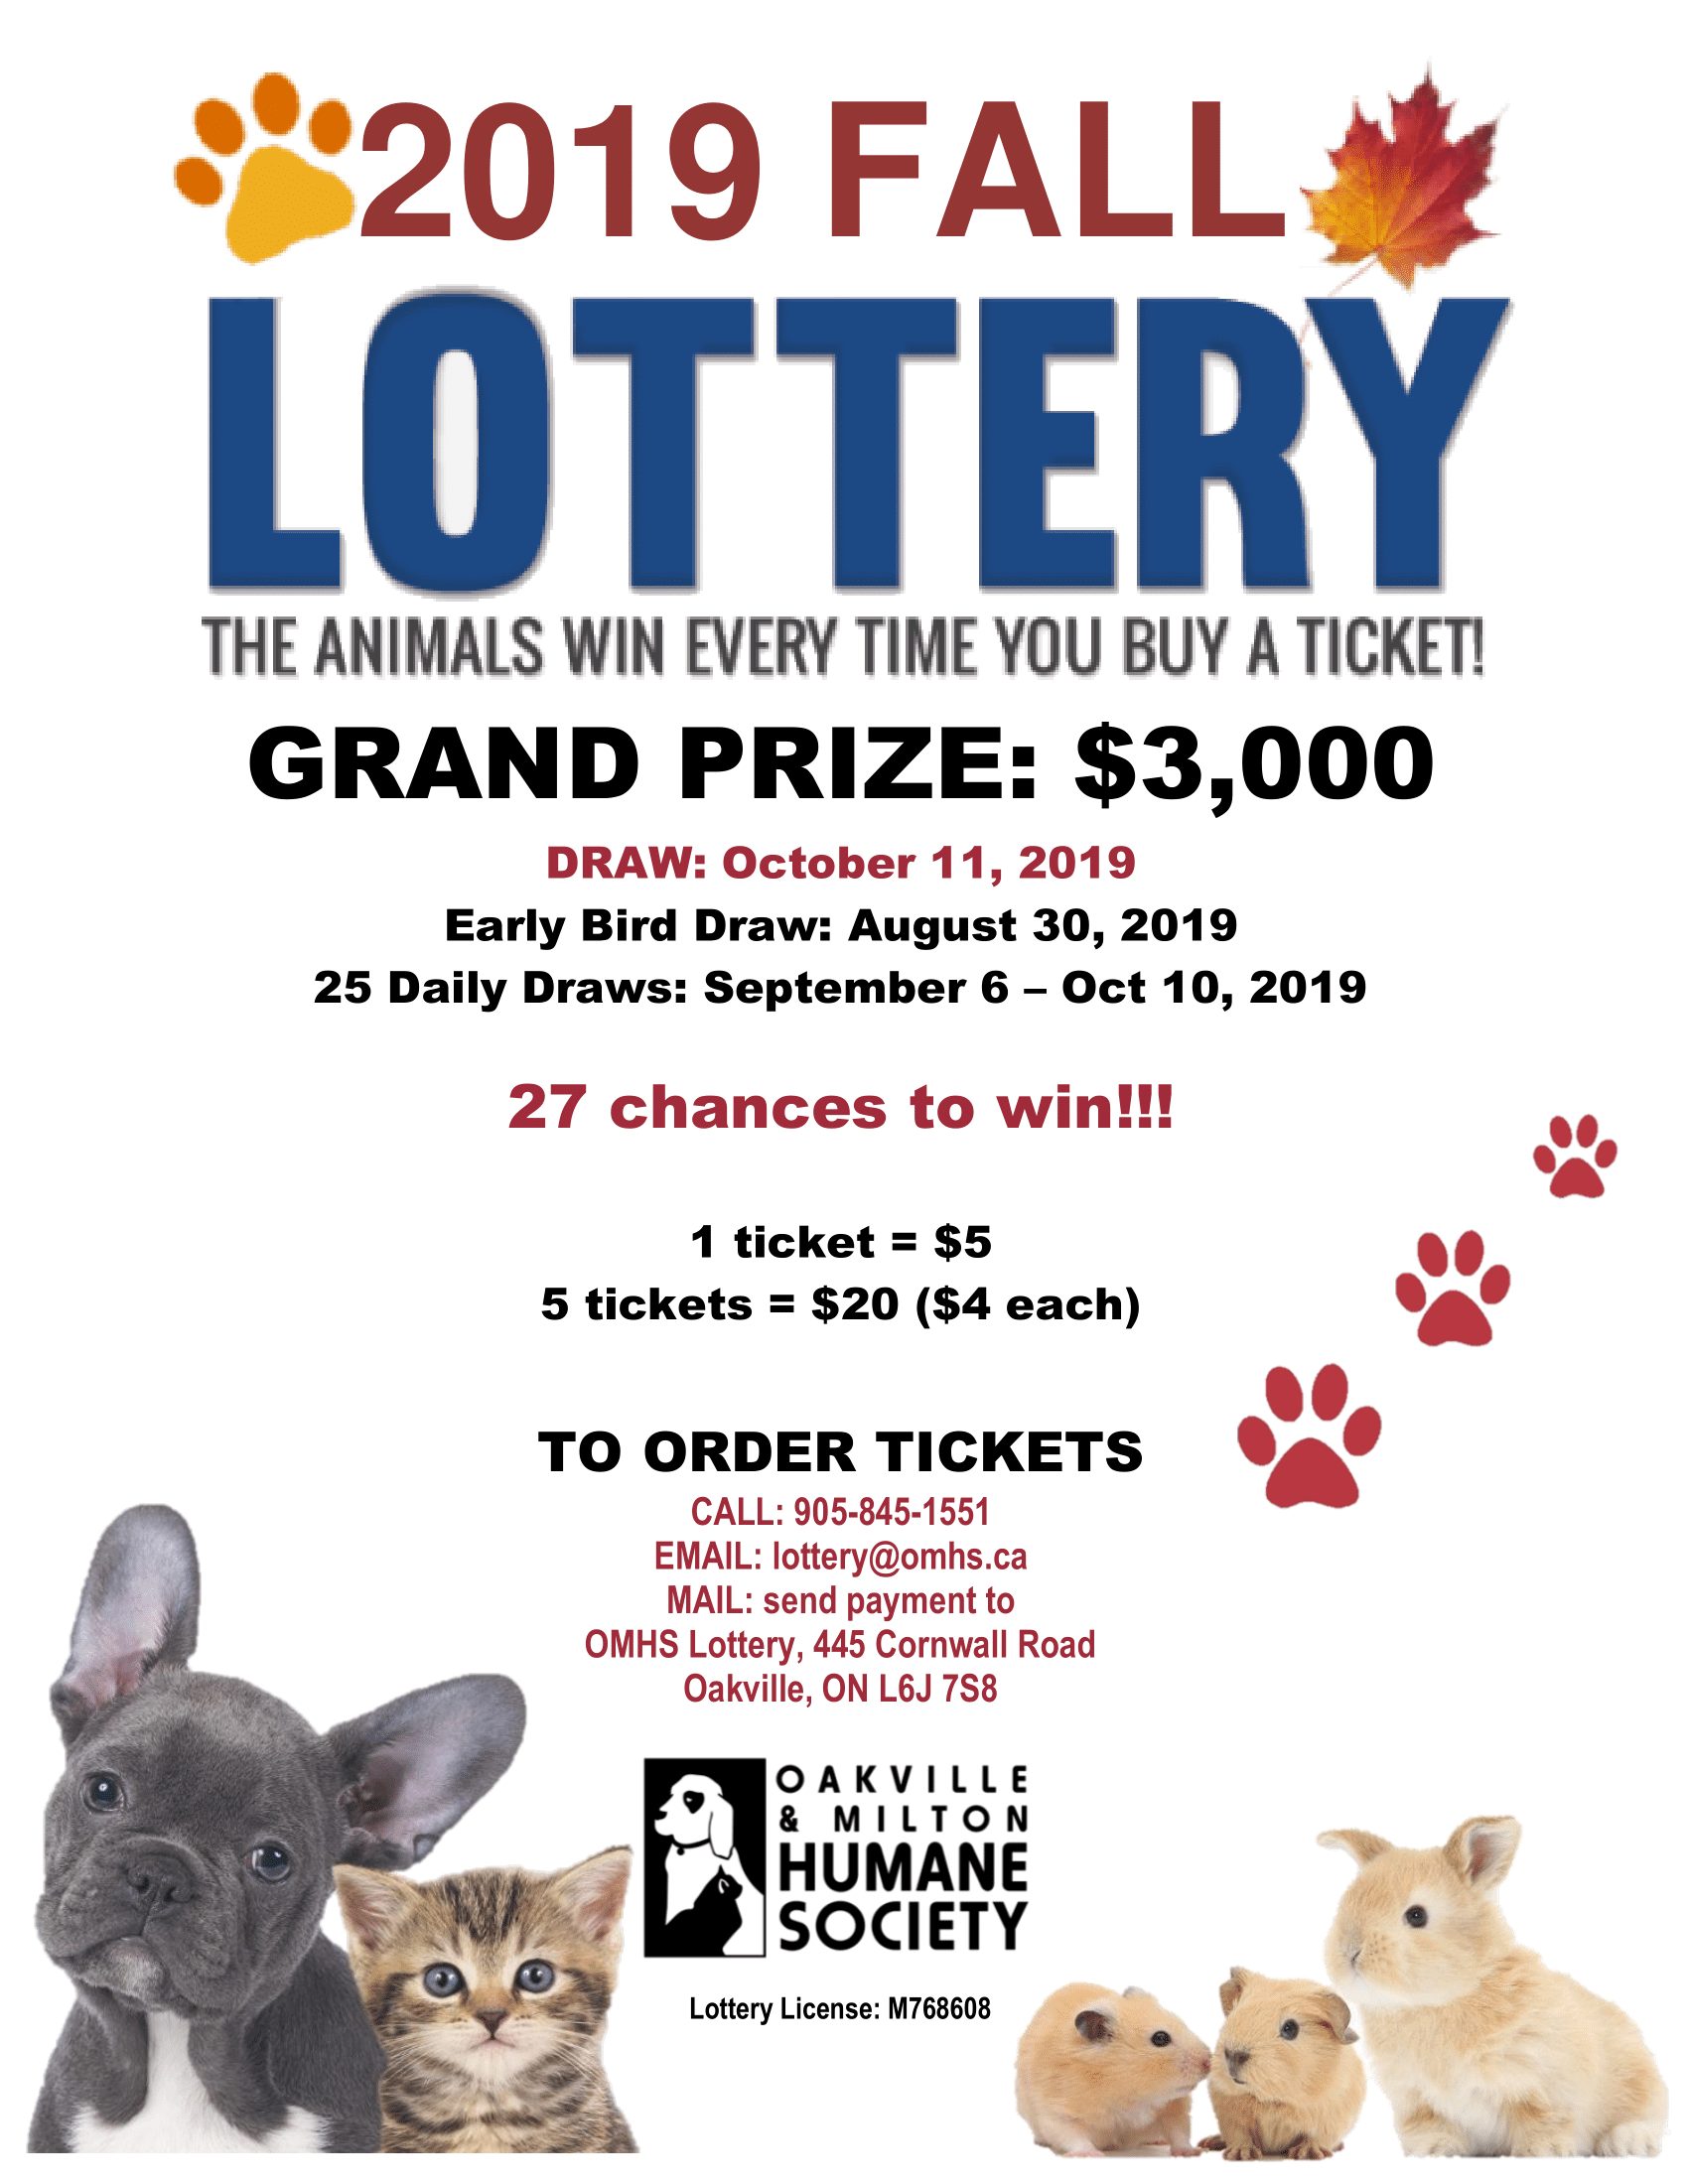 Fall Lottery Poster RD 1 - Lottery